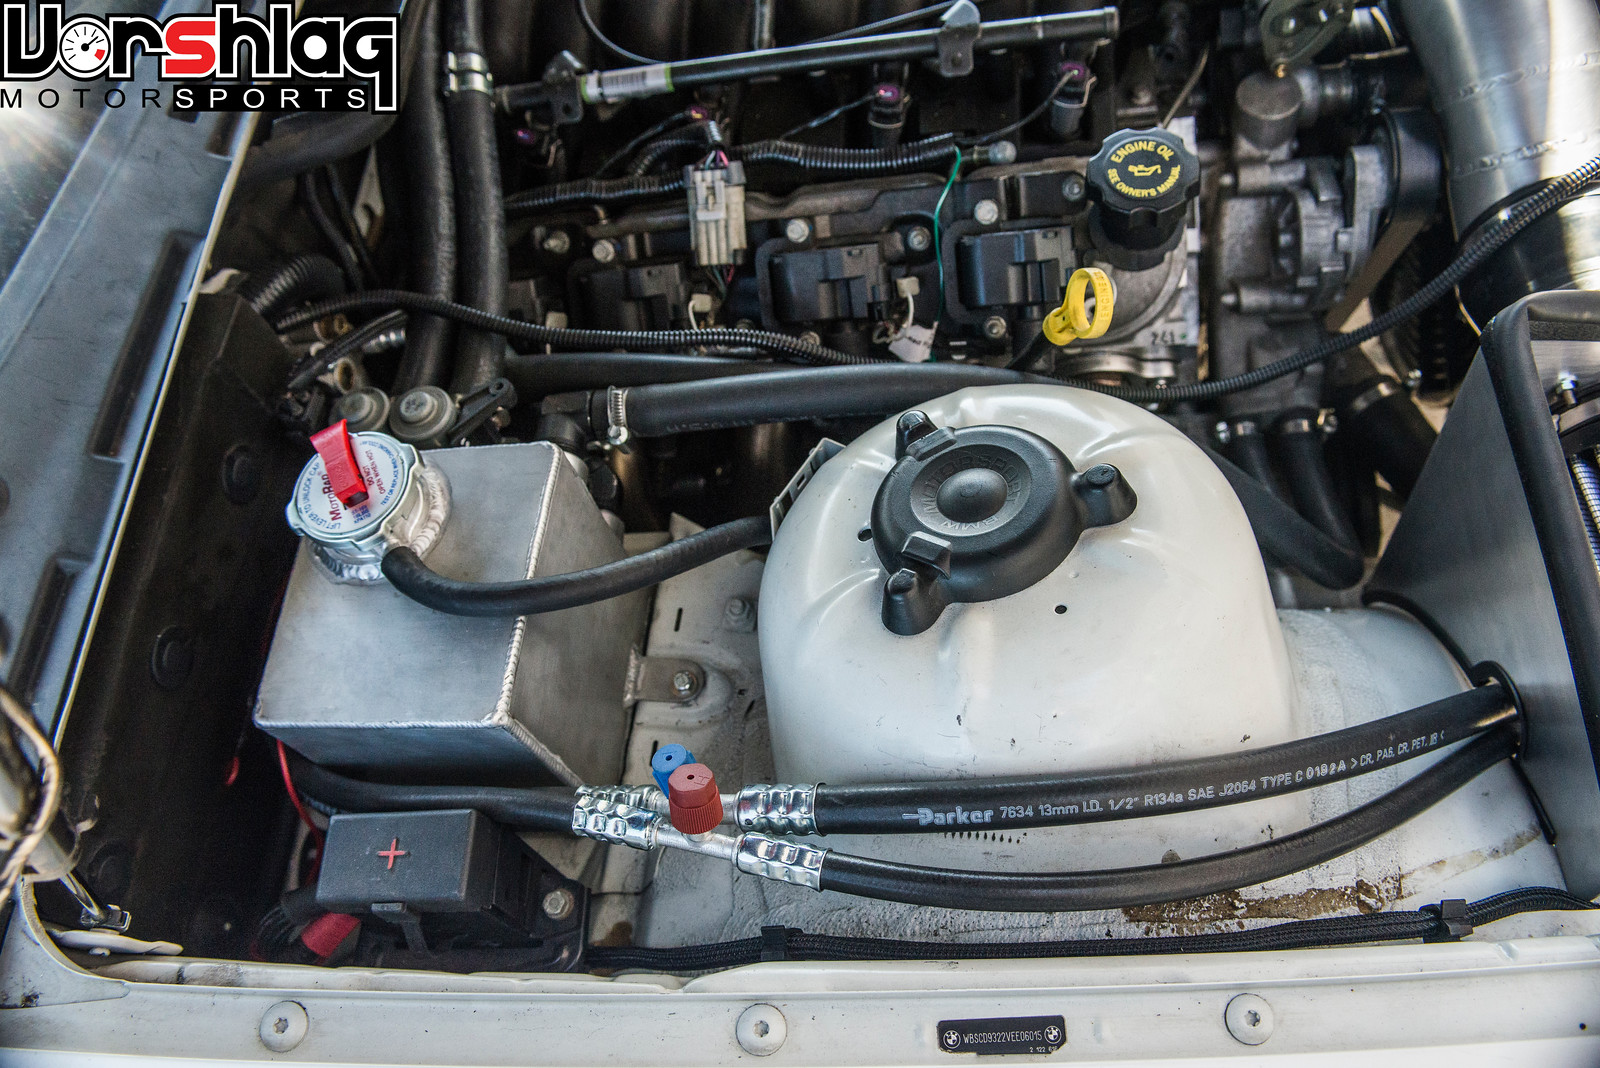 _DSC7742 X3 vorshlag announcement thread for all ls1 swap development ls1 e36 wiring harness how to at webbmarketing.co